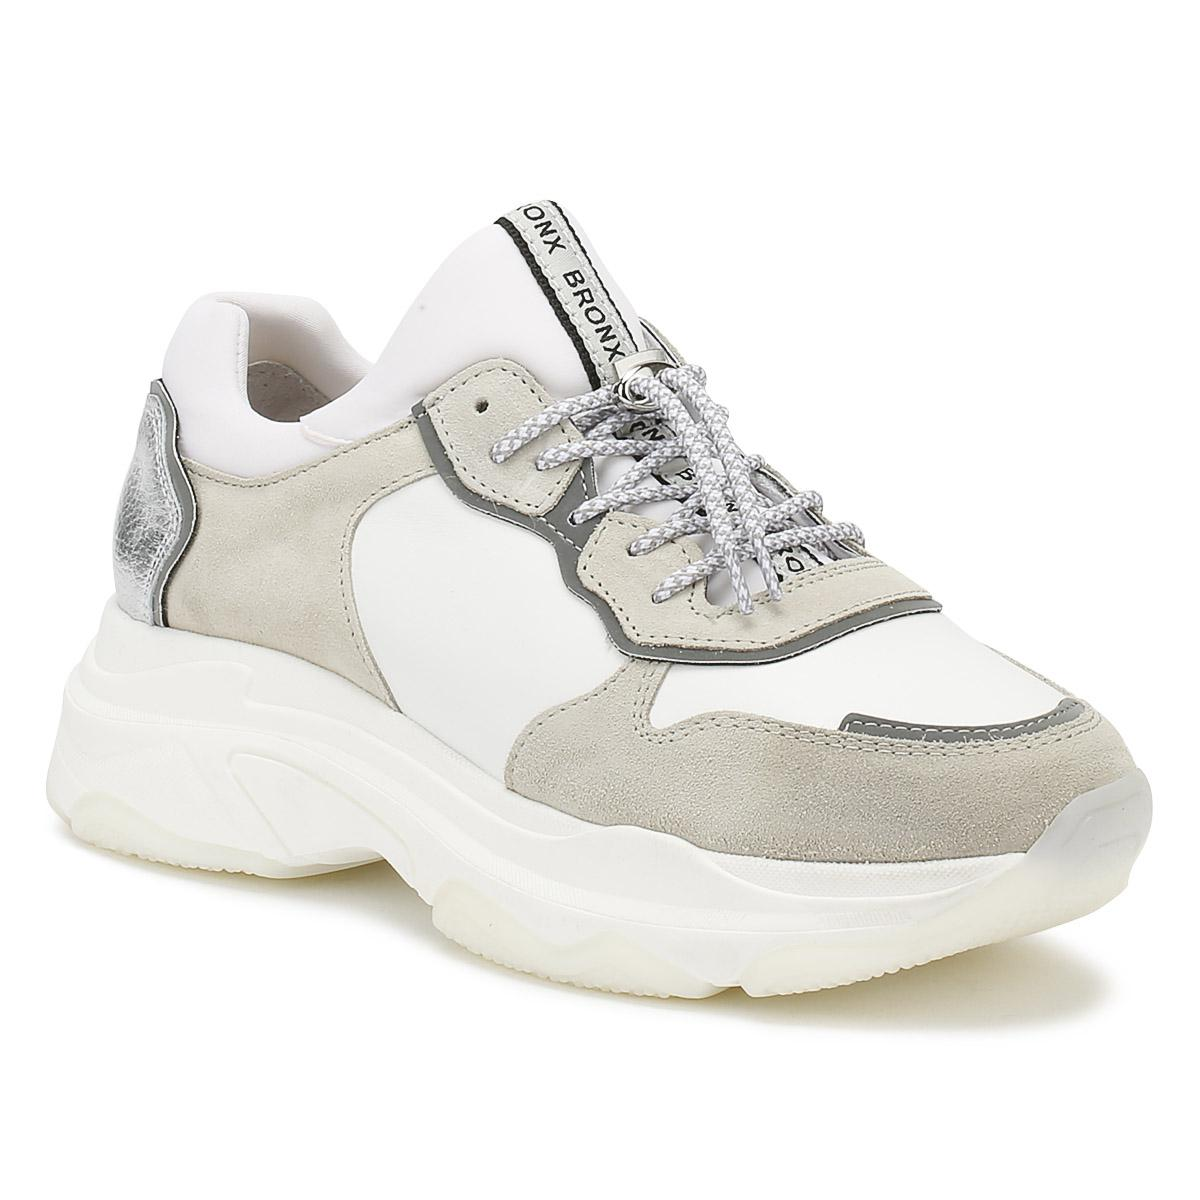 White & Grey Suede Chunky Trainers - White Bronx byt3r3